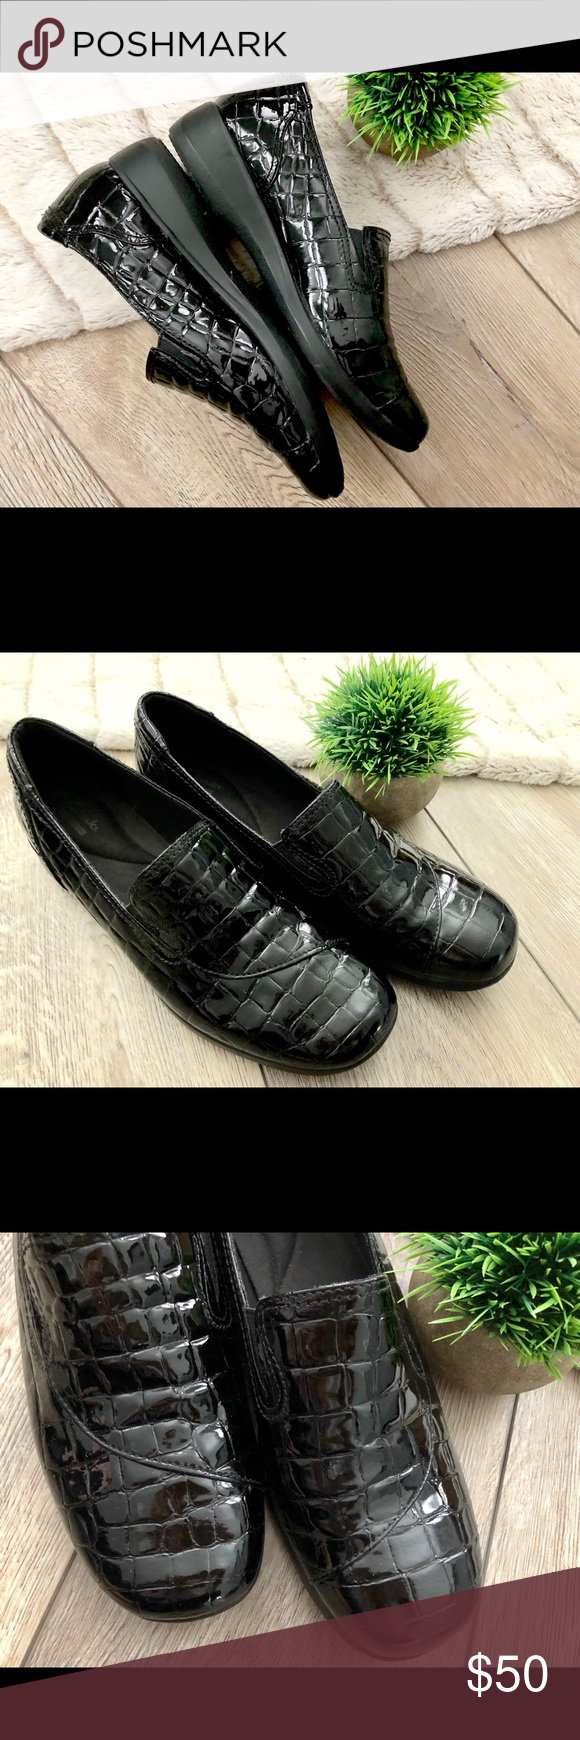 08e057dbe9a Clarks Keesha Luca Black Patent Crocodile Loafer Clarks Keesha Luca Black  patent leather crocodile loafers.